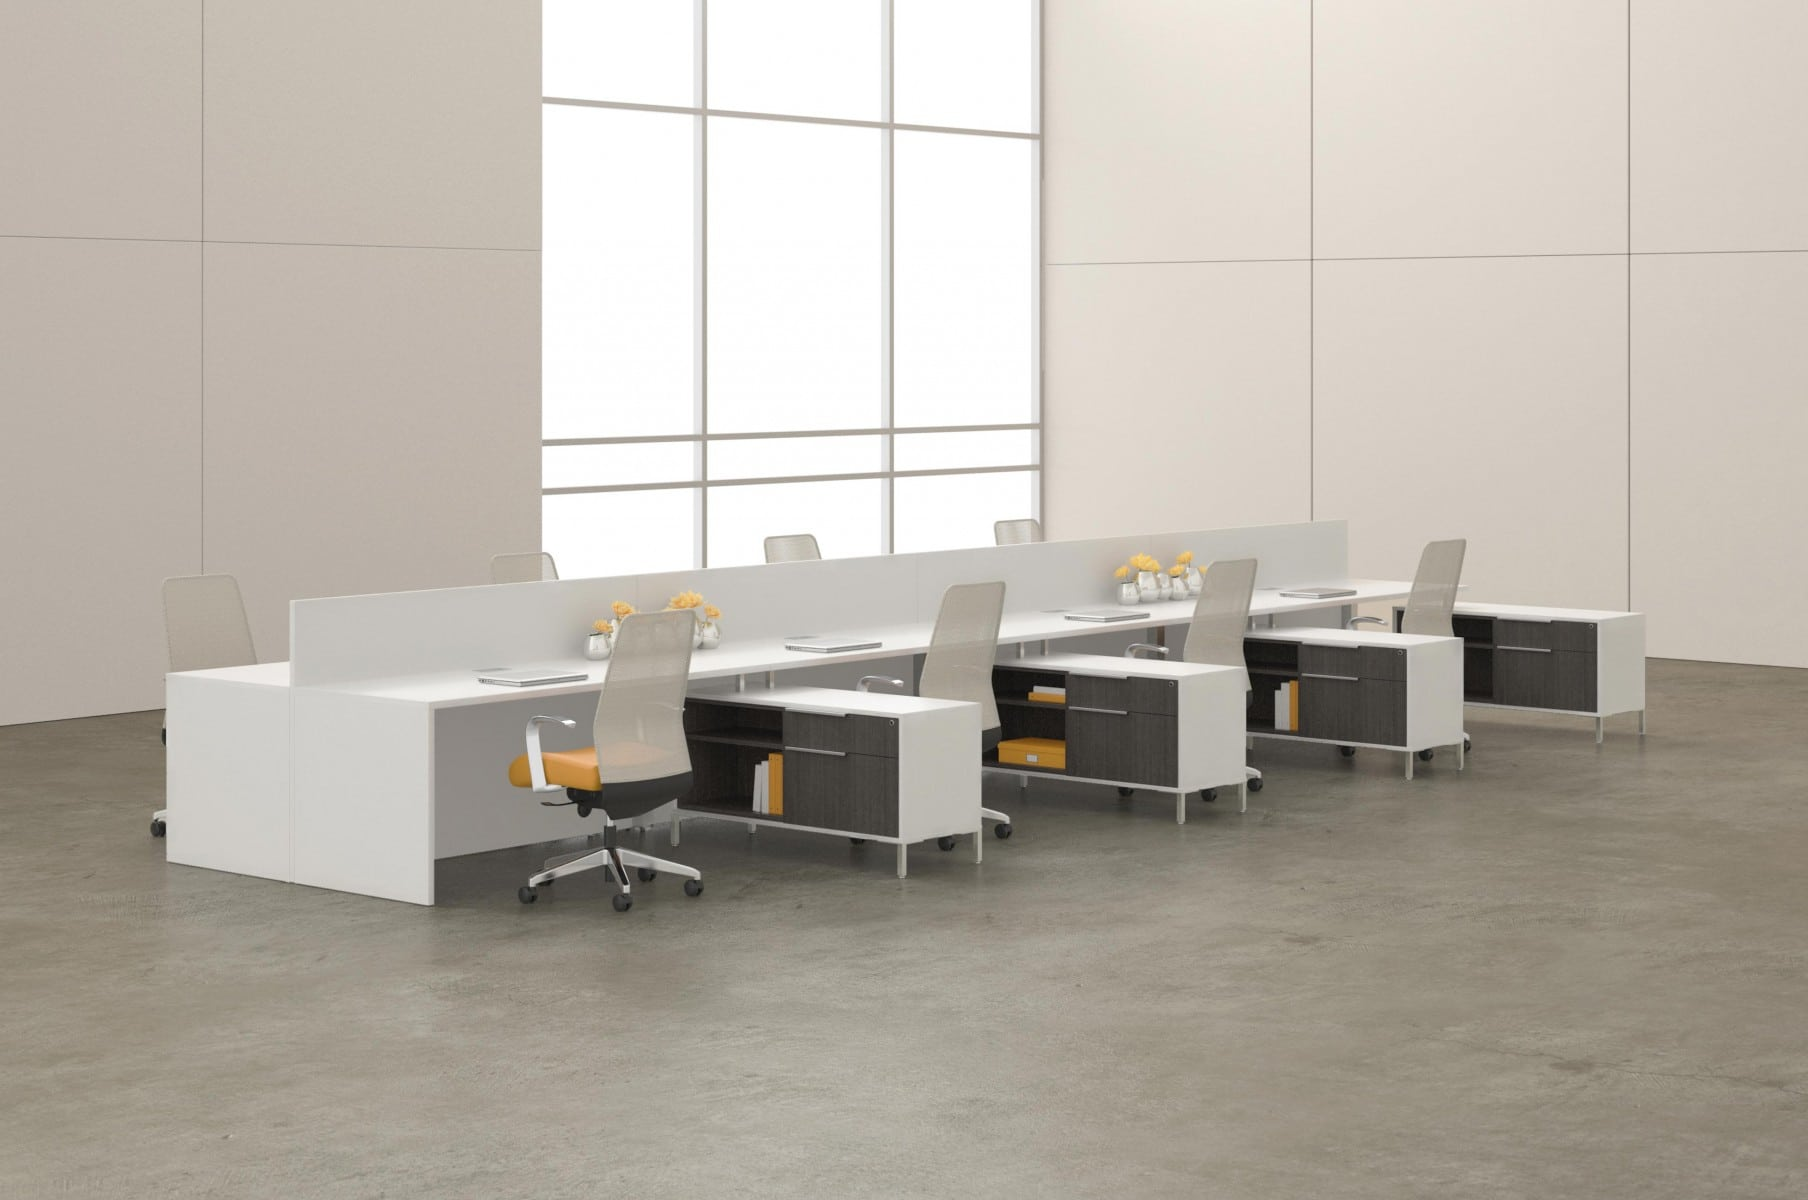 modern bench cargo hub desking in a large open room office setting